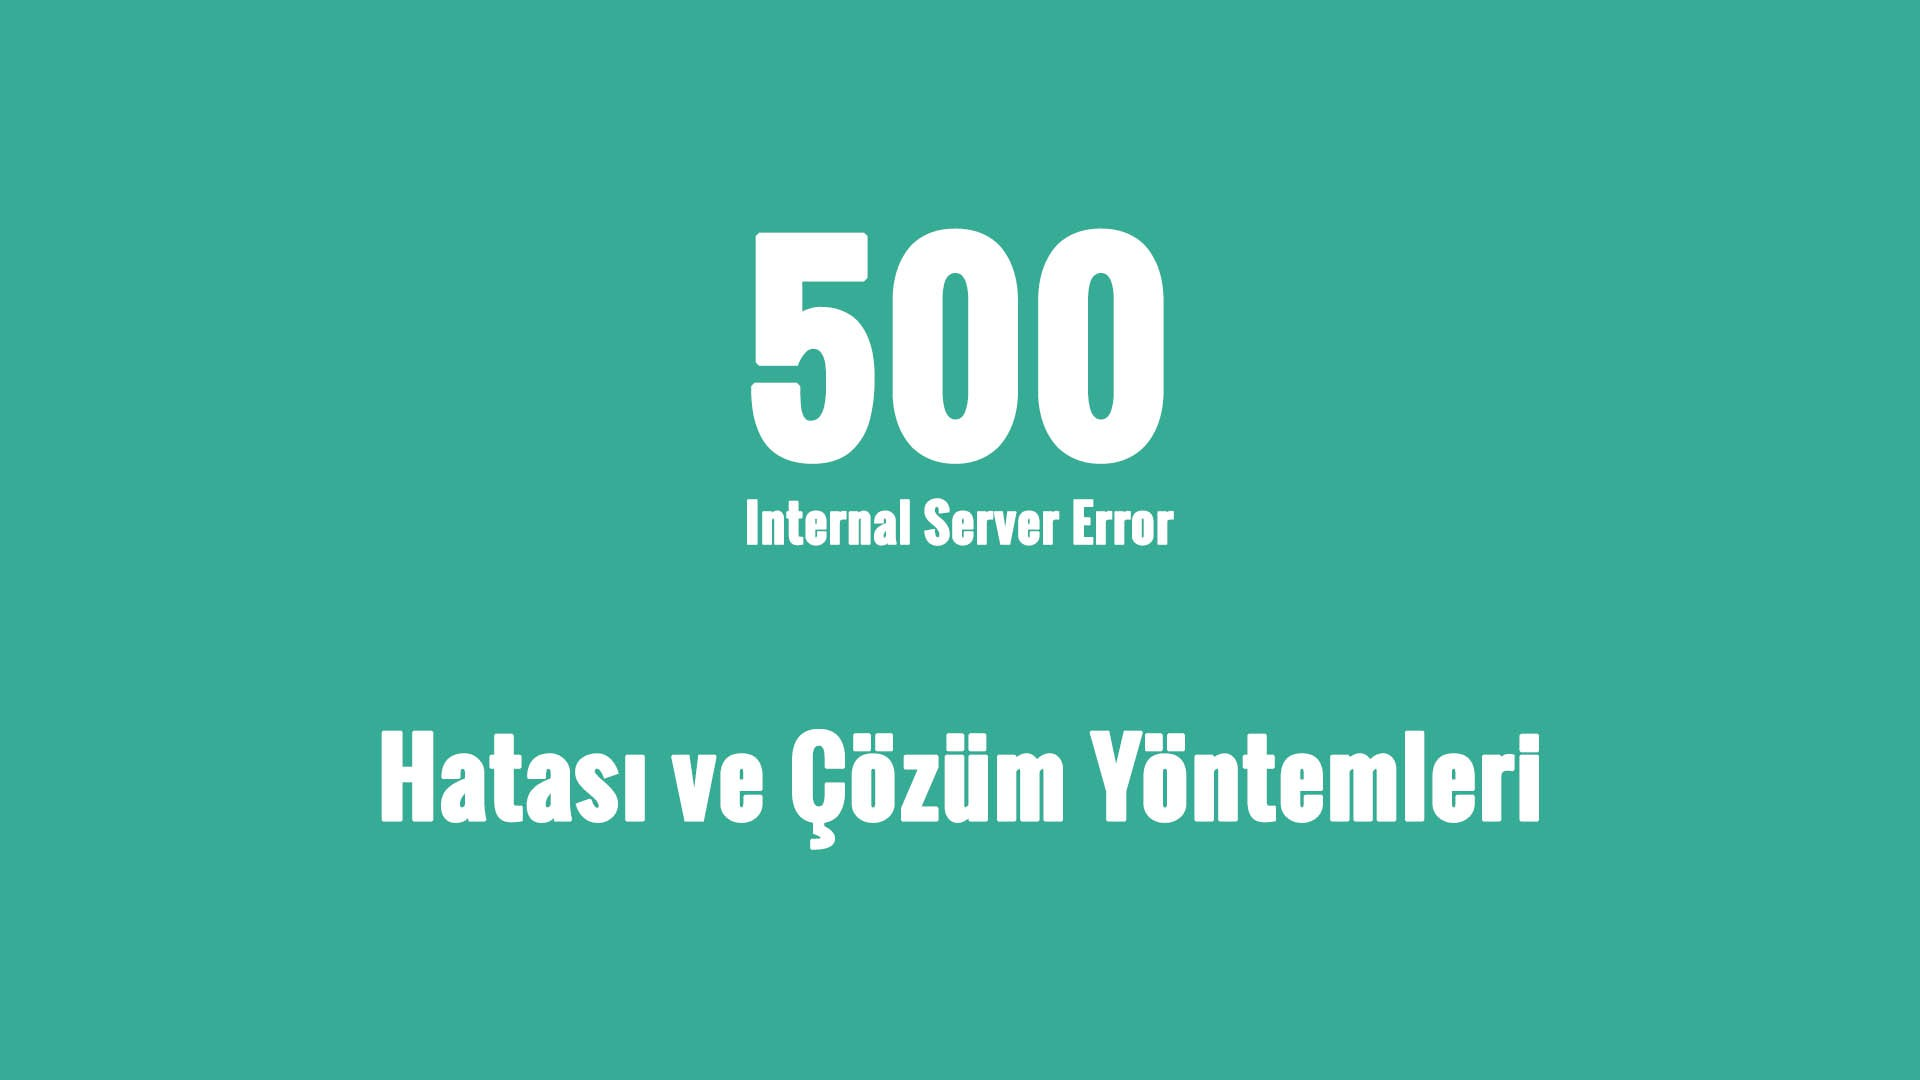 WordPress'te 500 Internal Server Error Çözüm Yöntemleri